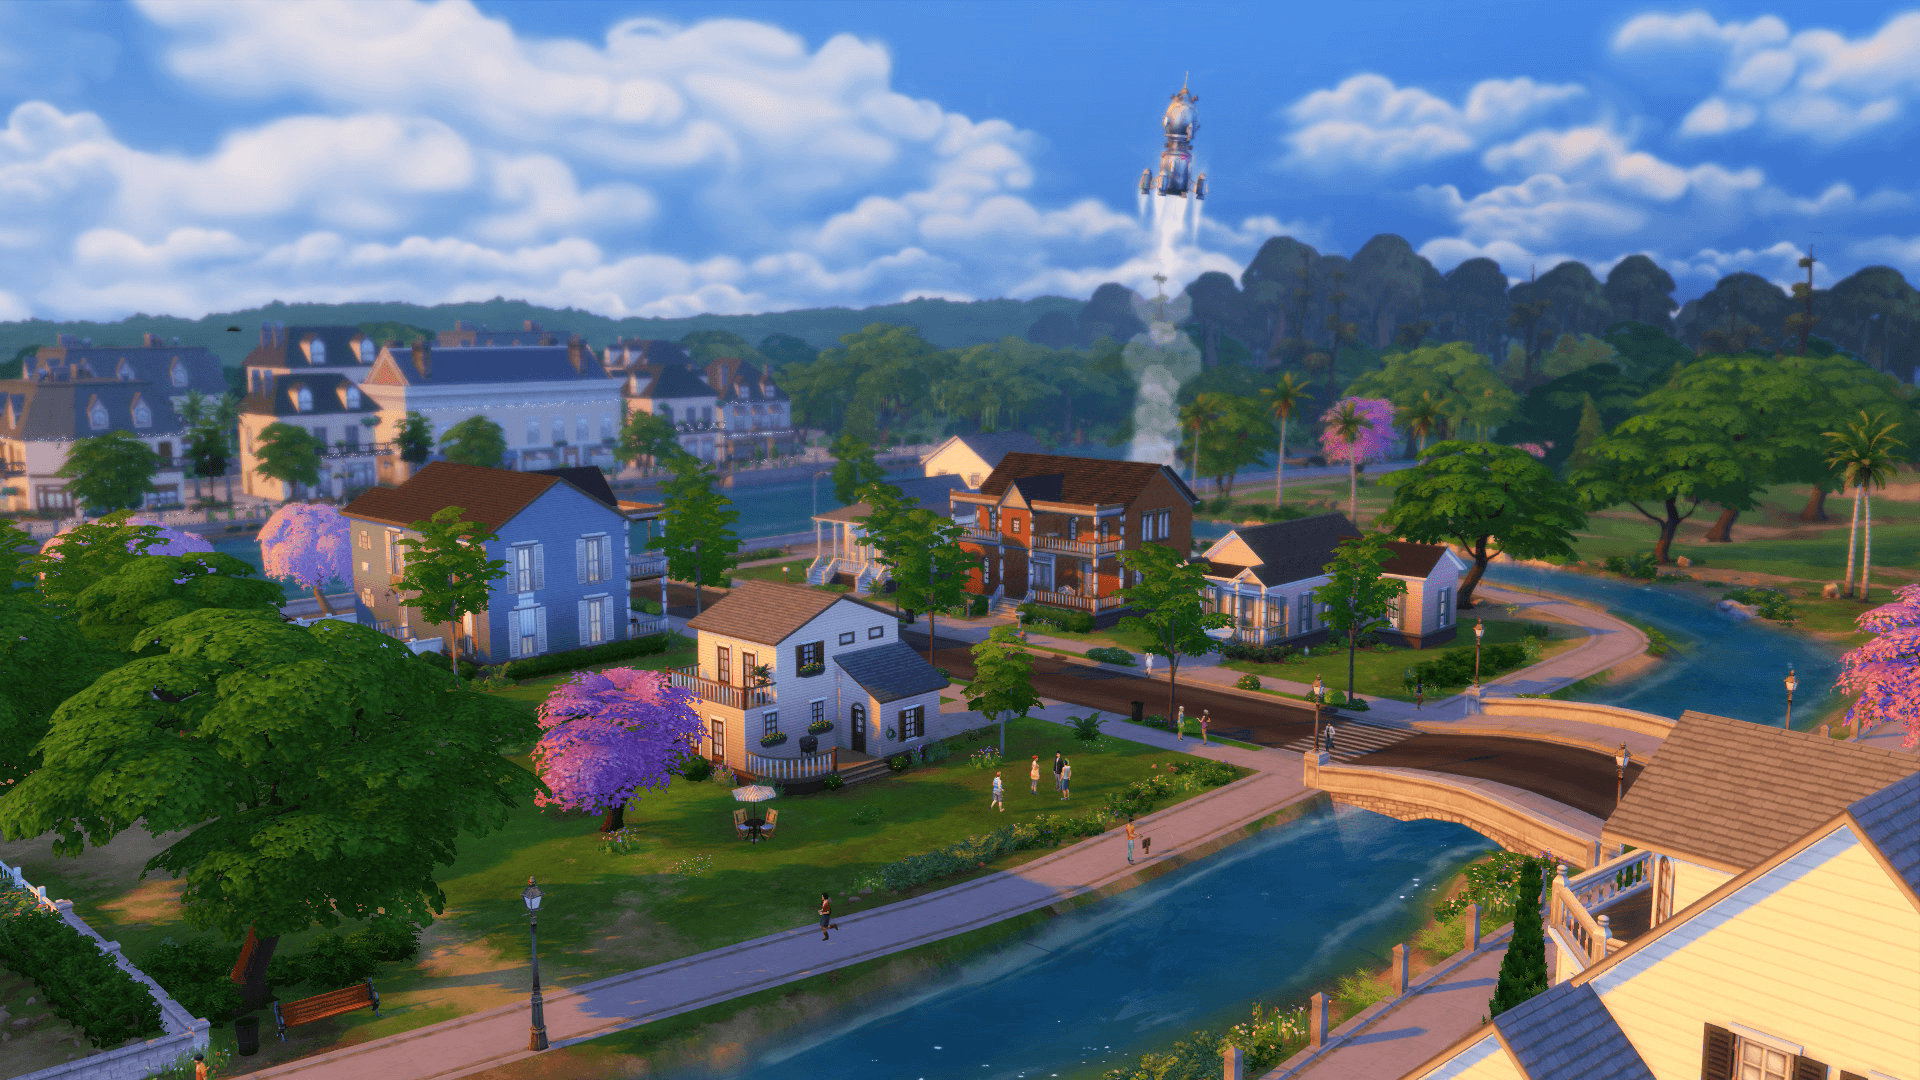 The Sims 4 Wallpapers Wallpapers